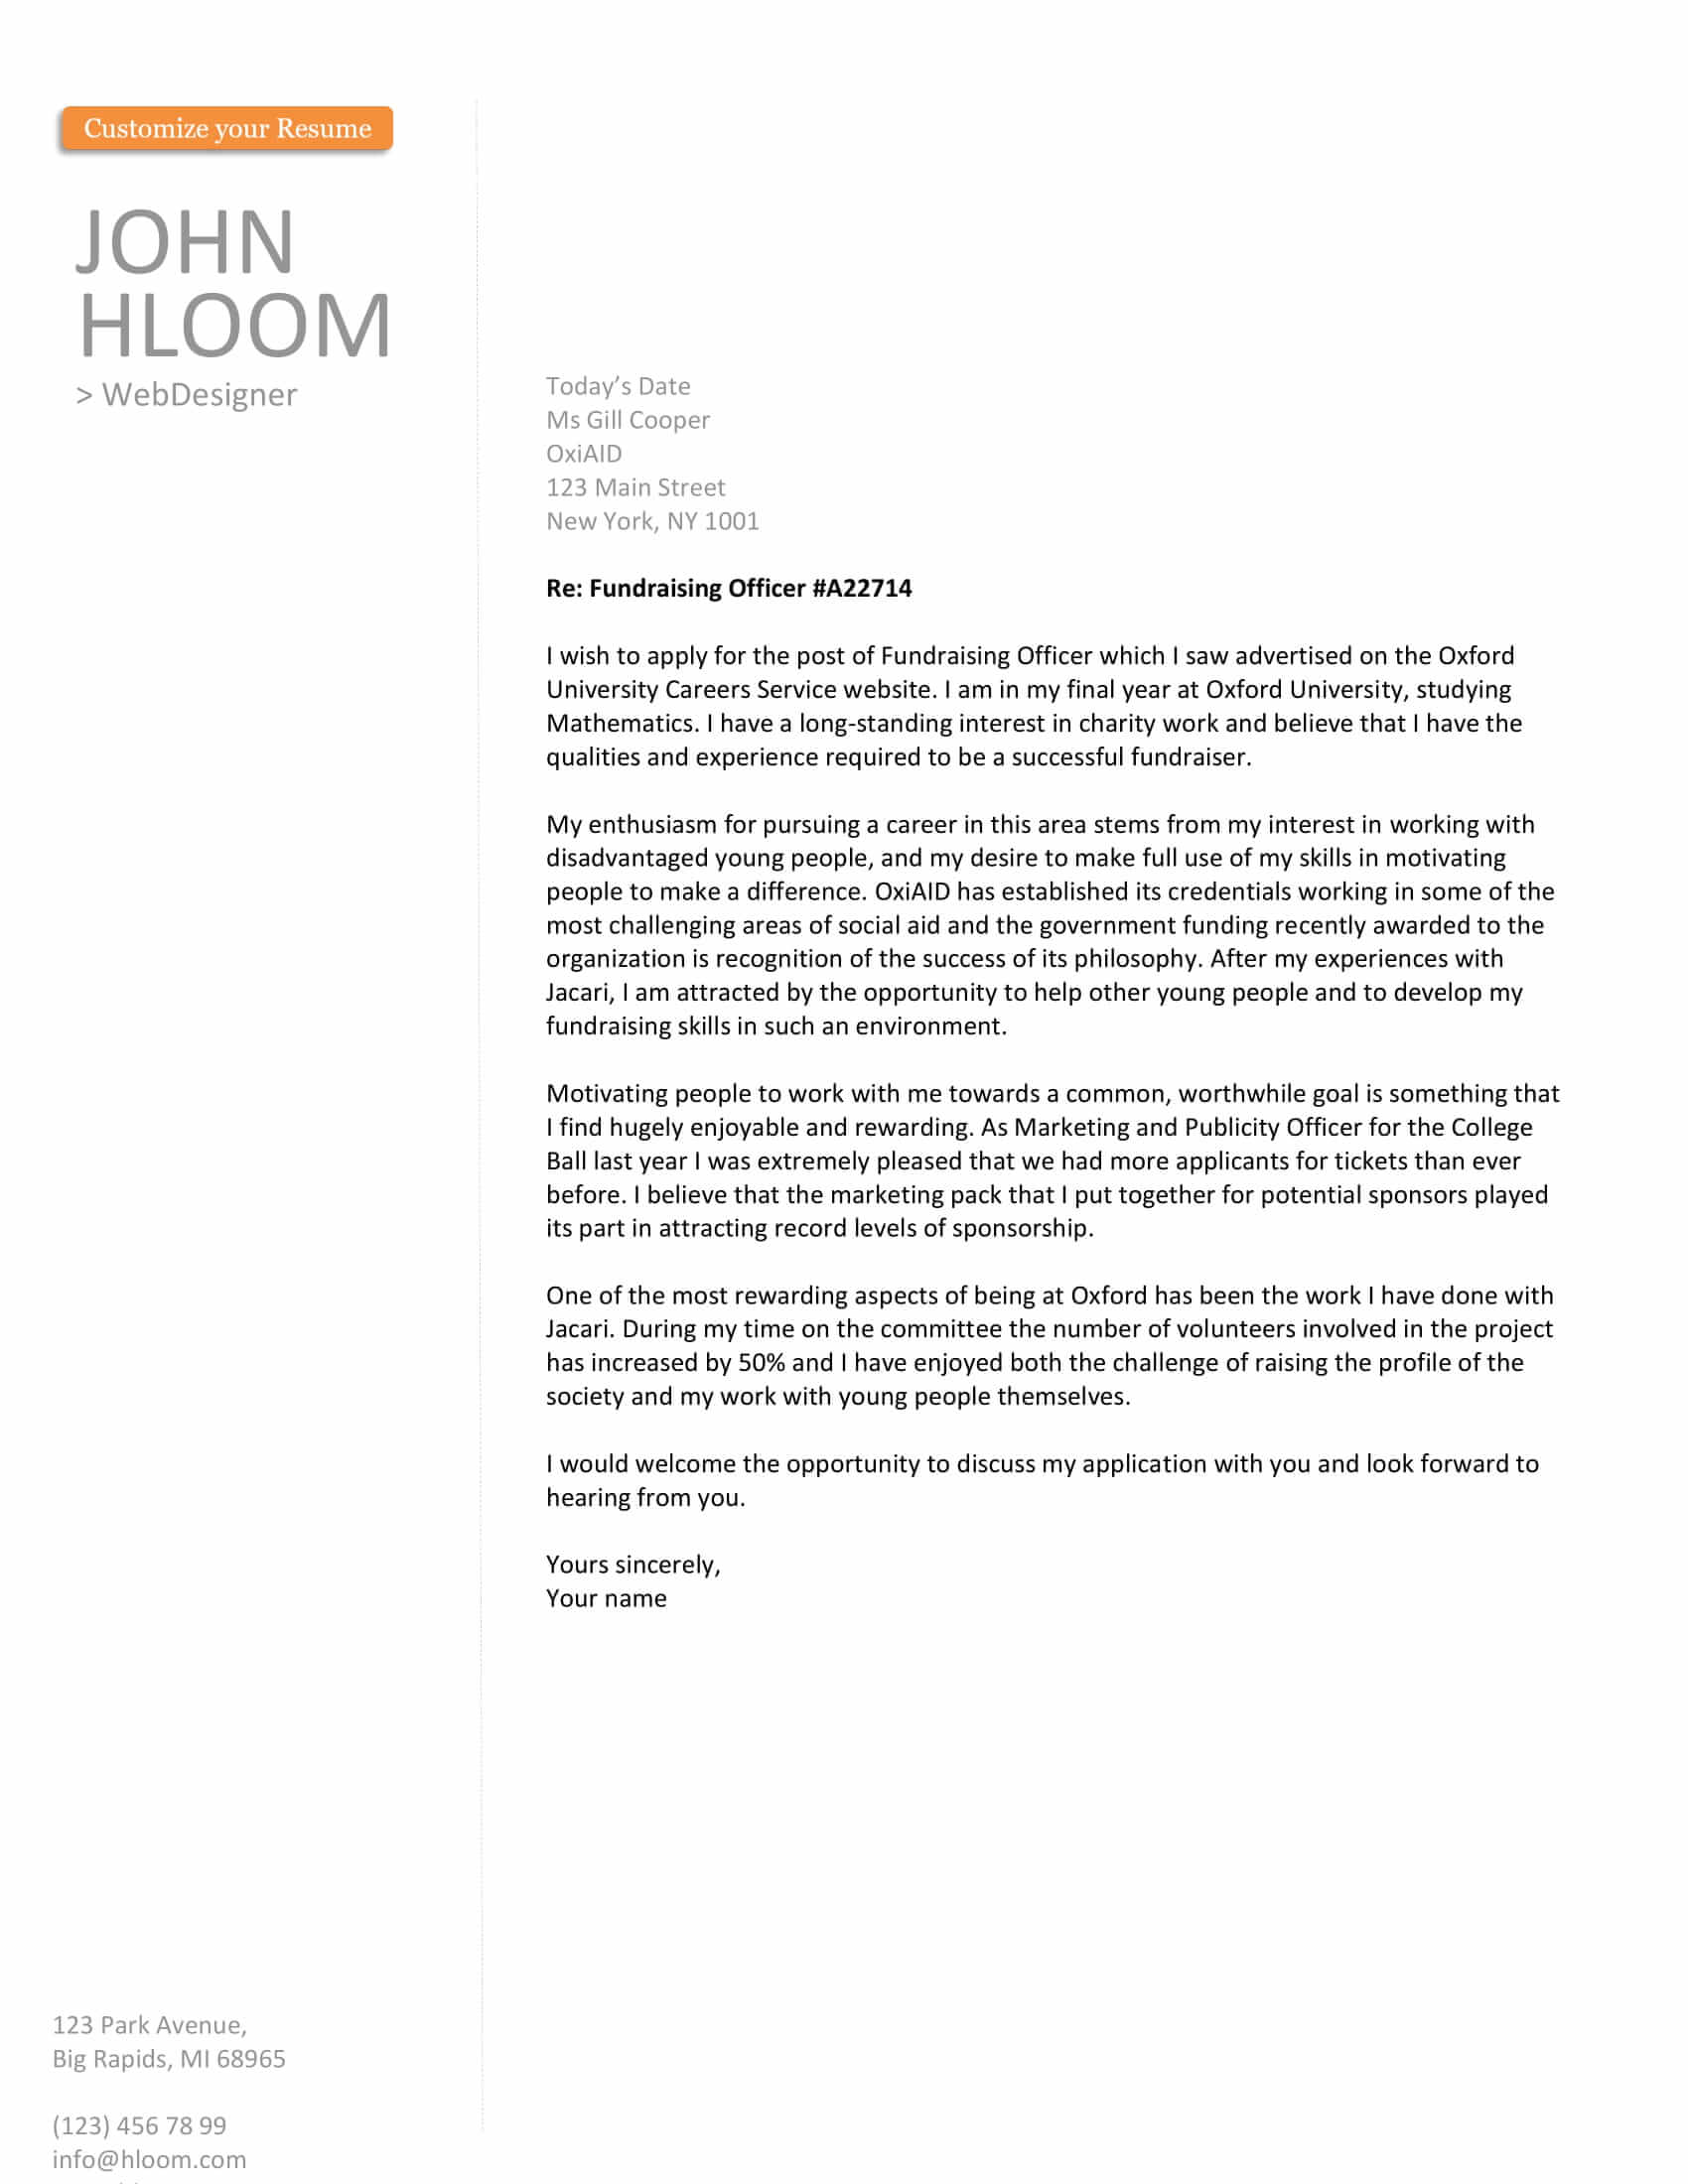 200+ Free Cover Letter Templates for All Industries | Hloom